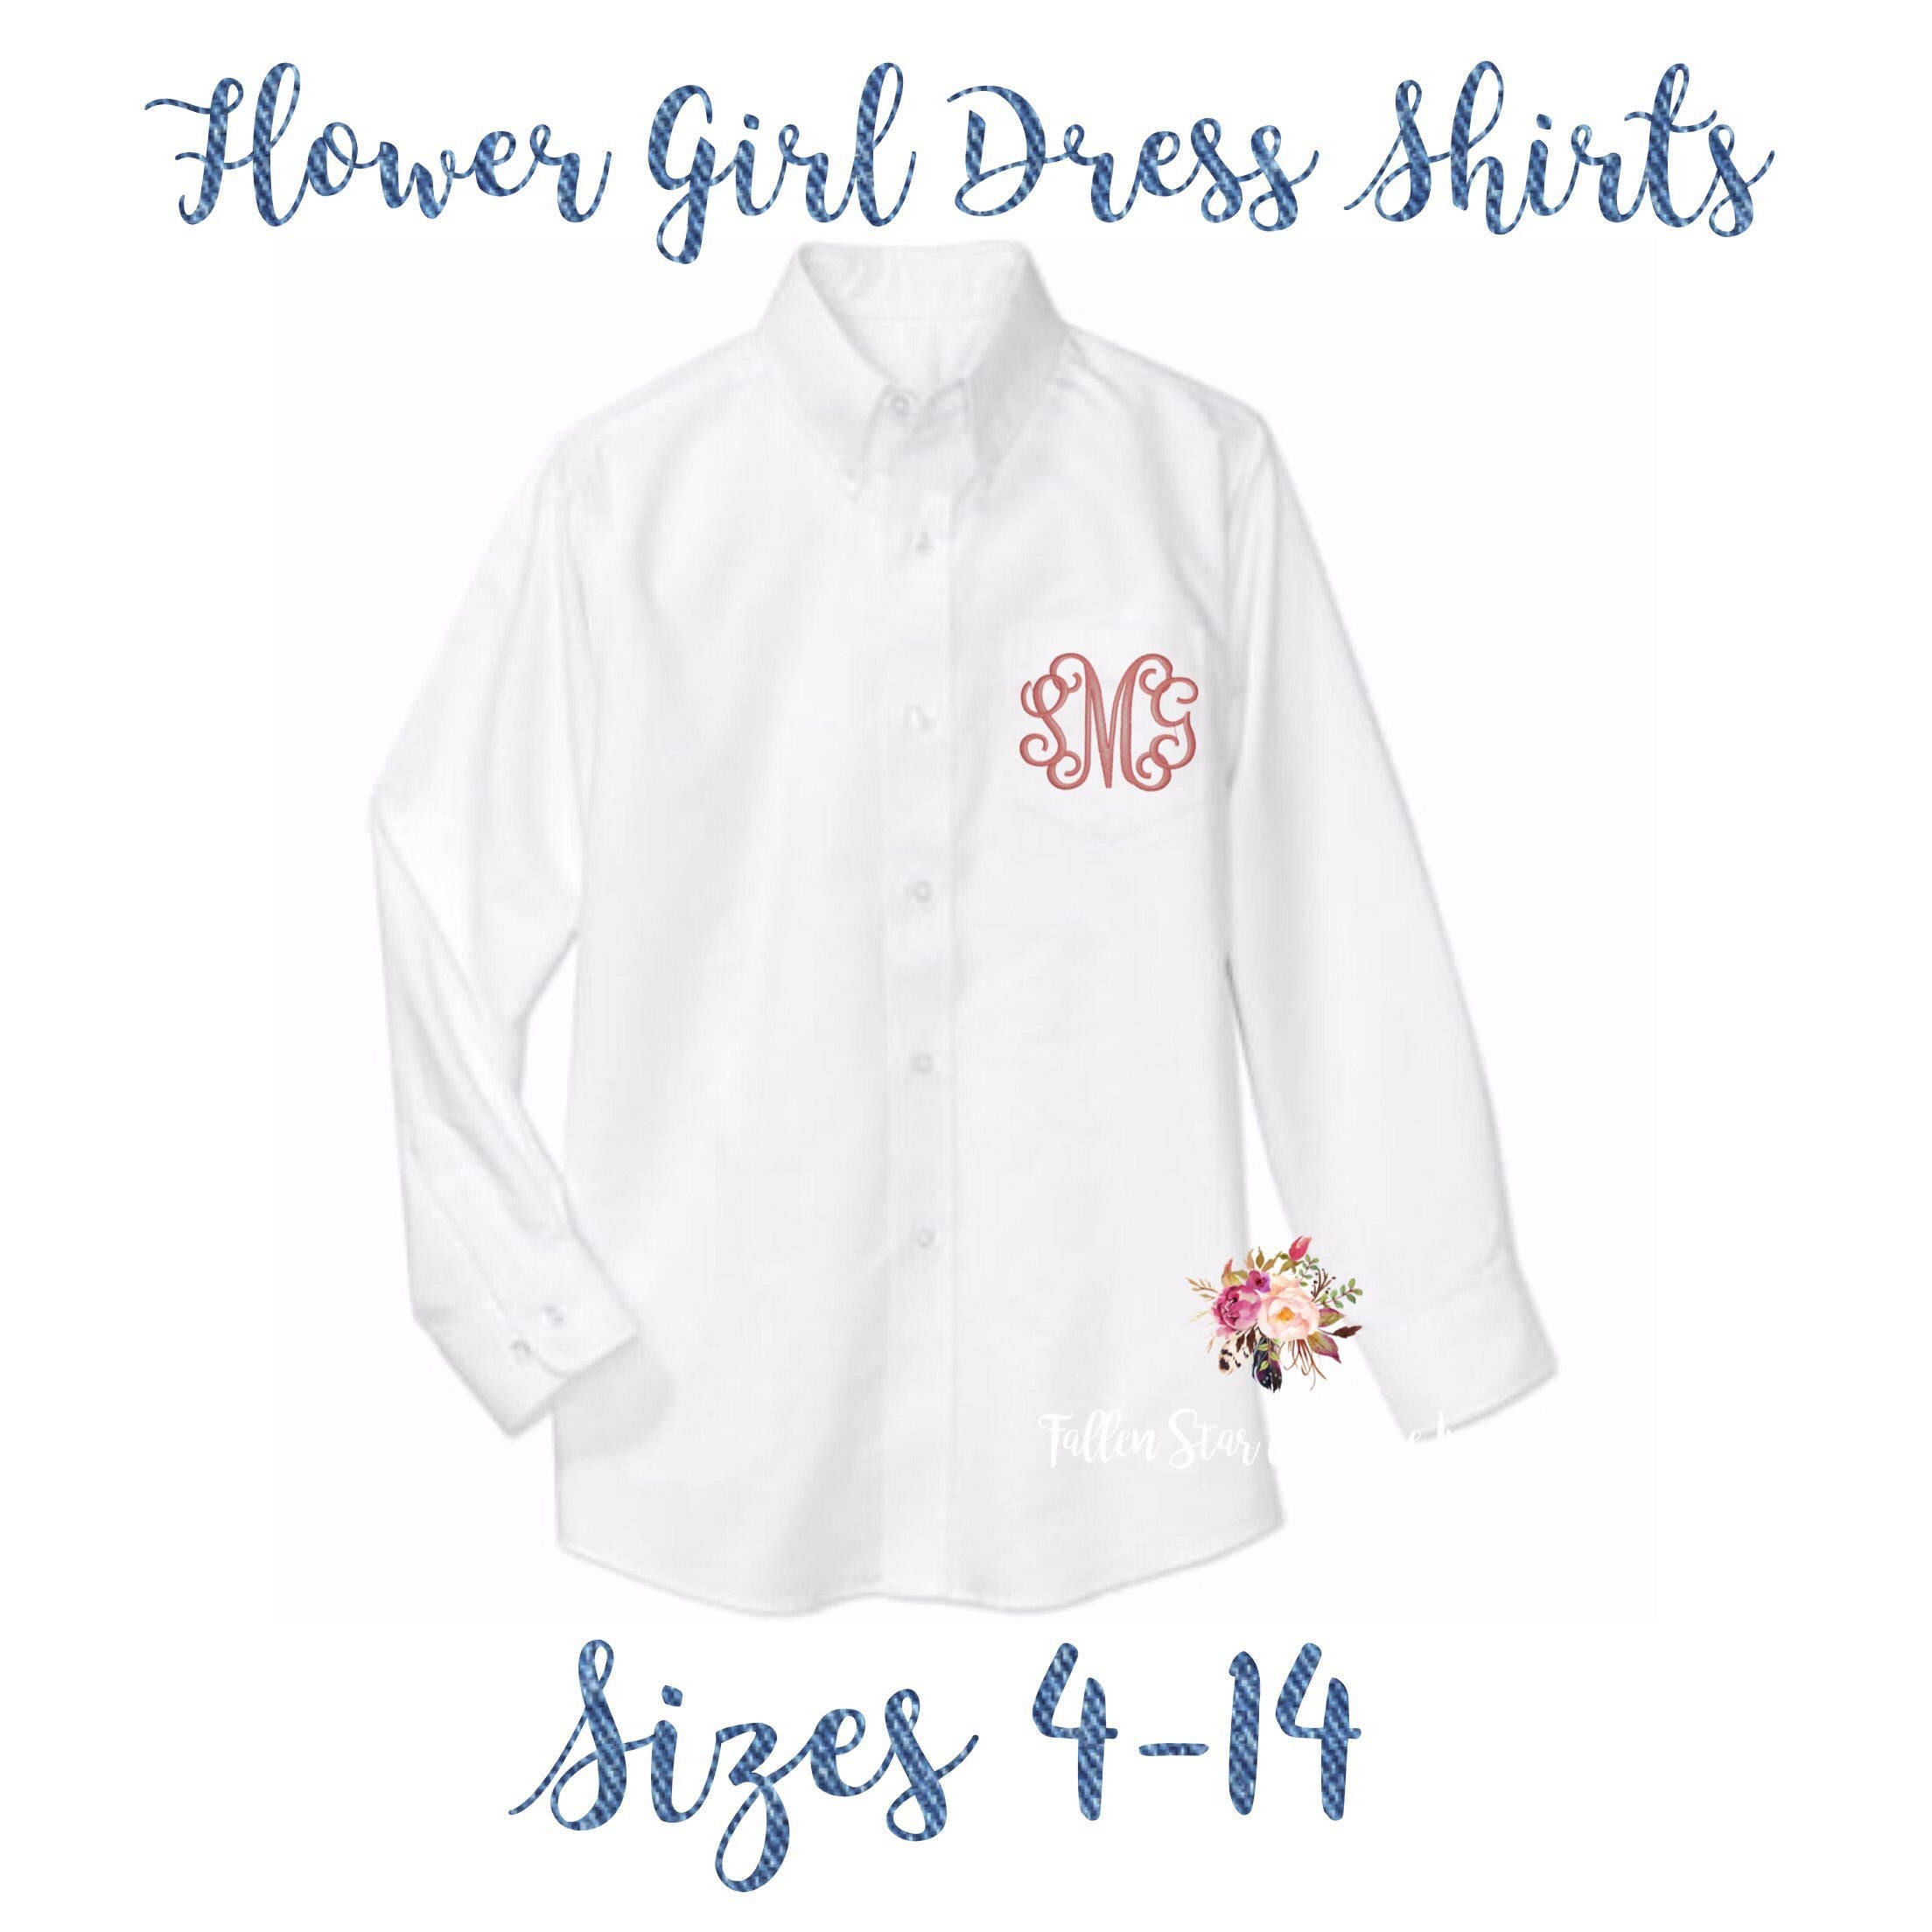 Flower Girl Oxford Shirts Monogrammed Oxford Shirts Getting Ready